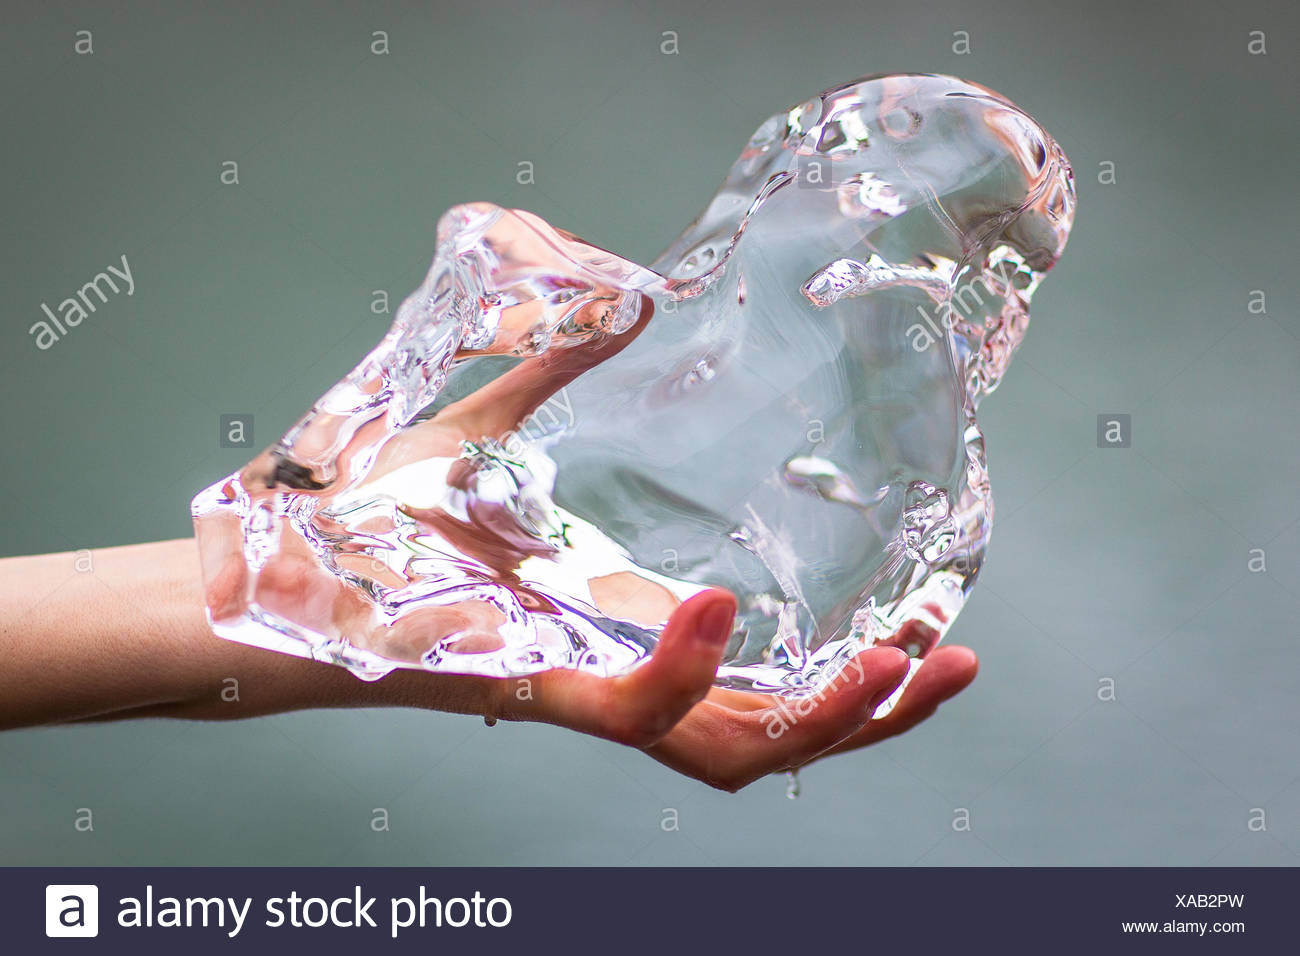 Cropped Hand Holding Ice Photo Stock